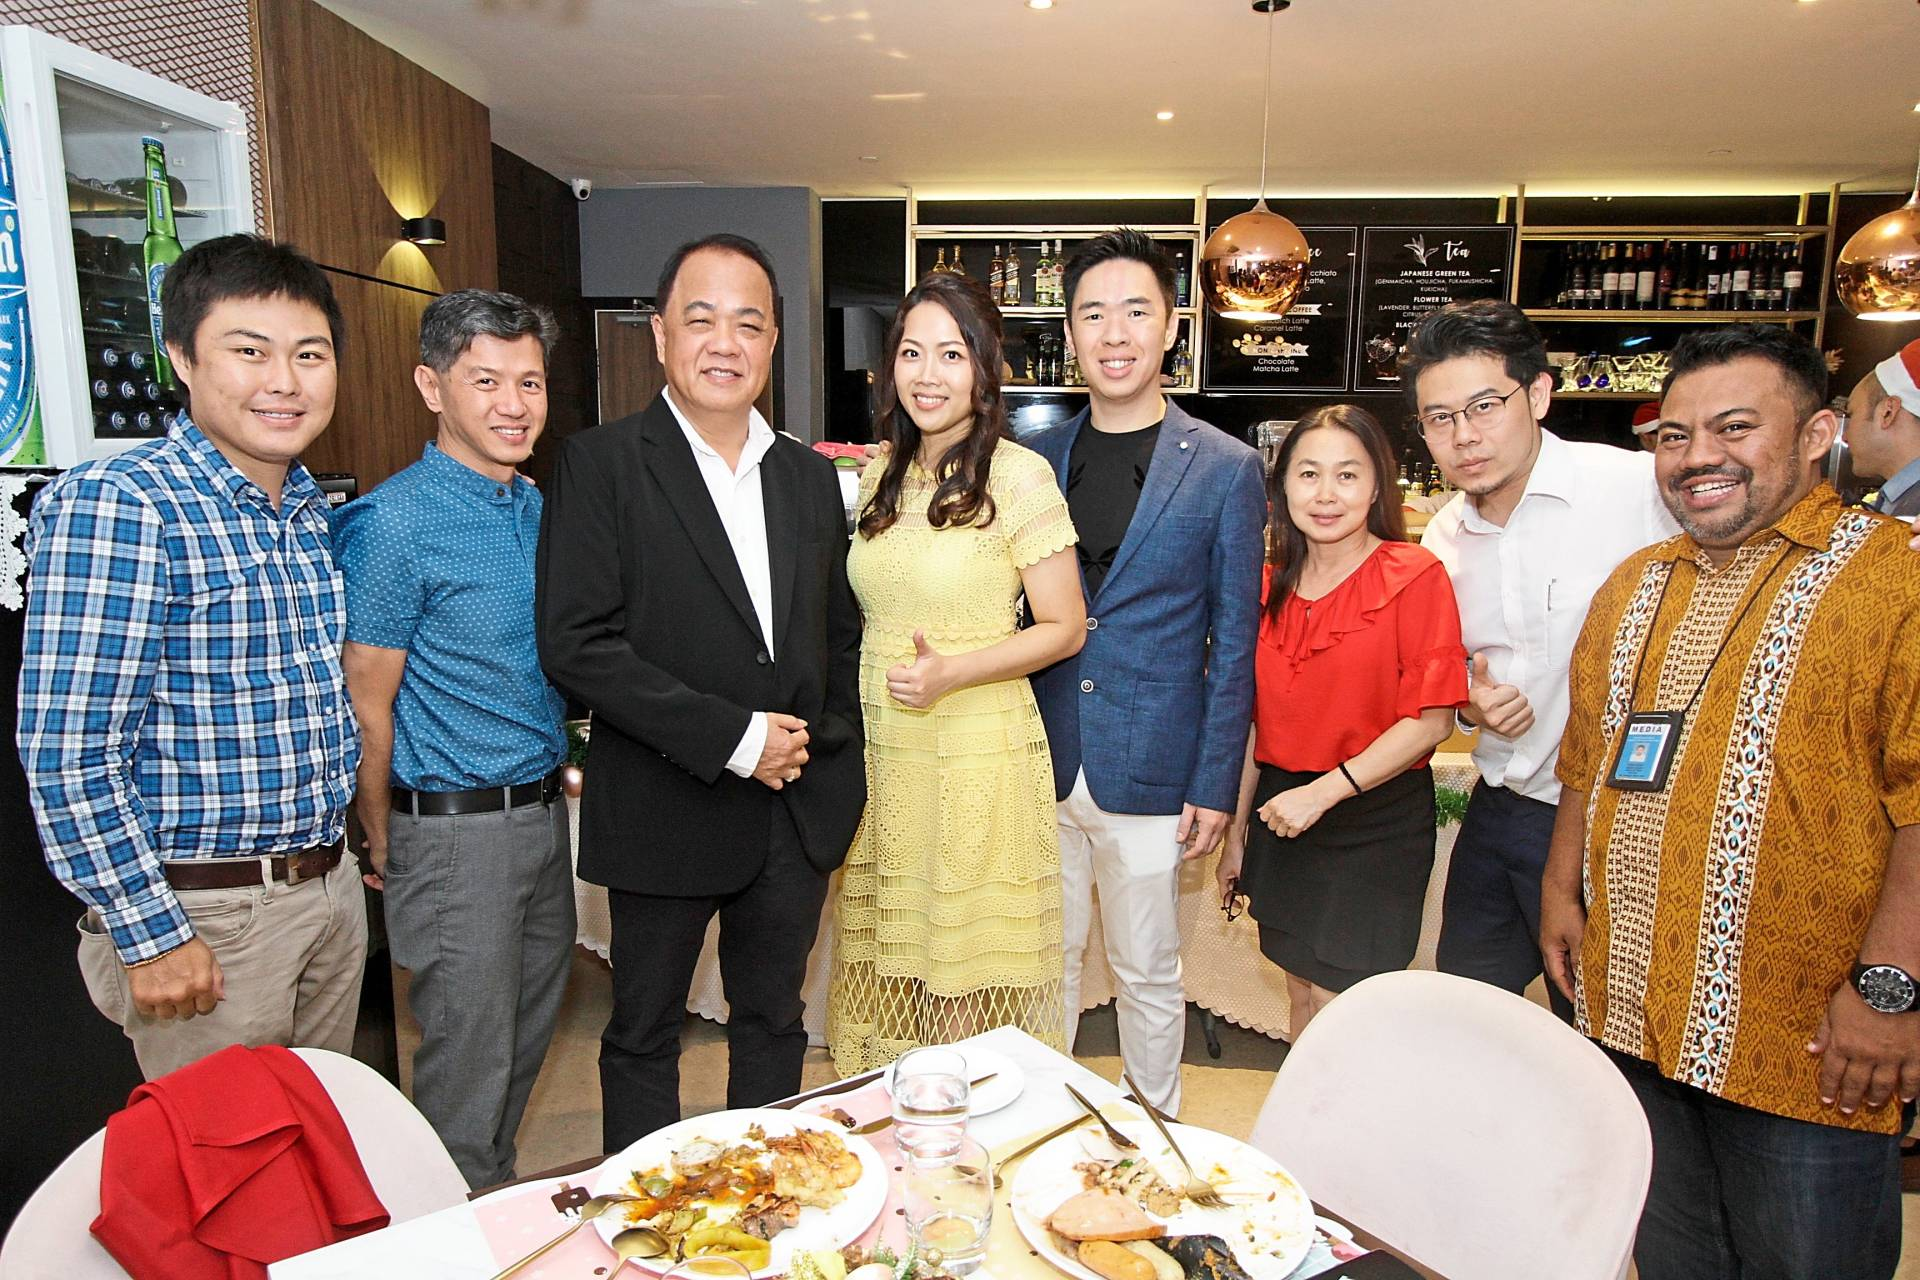 Kean Tet (third left) posing for a picture with The Star team.